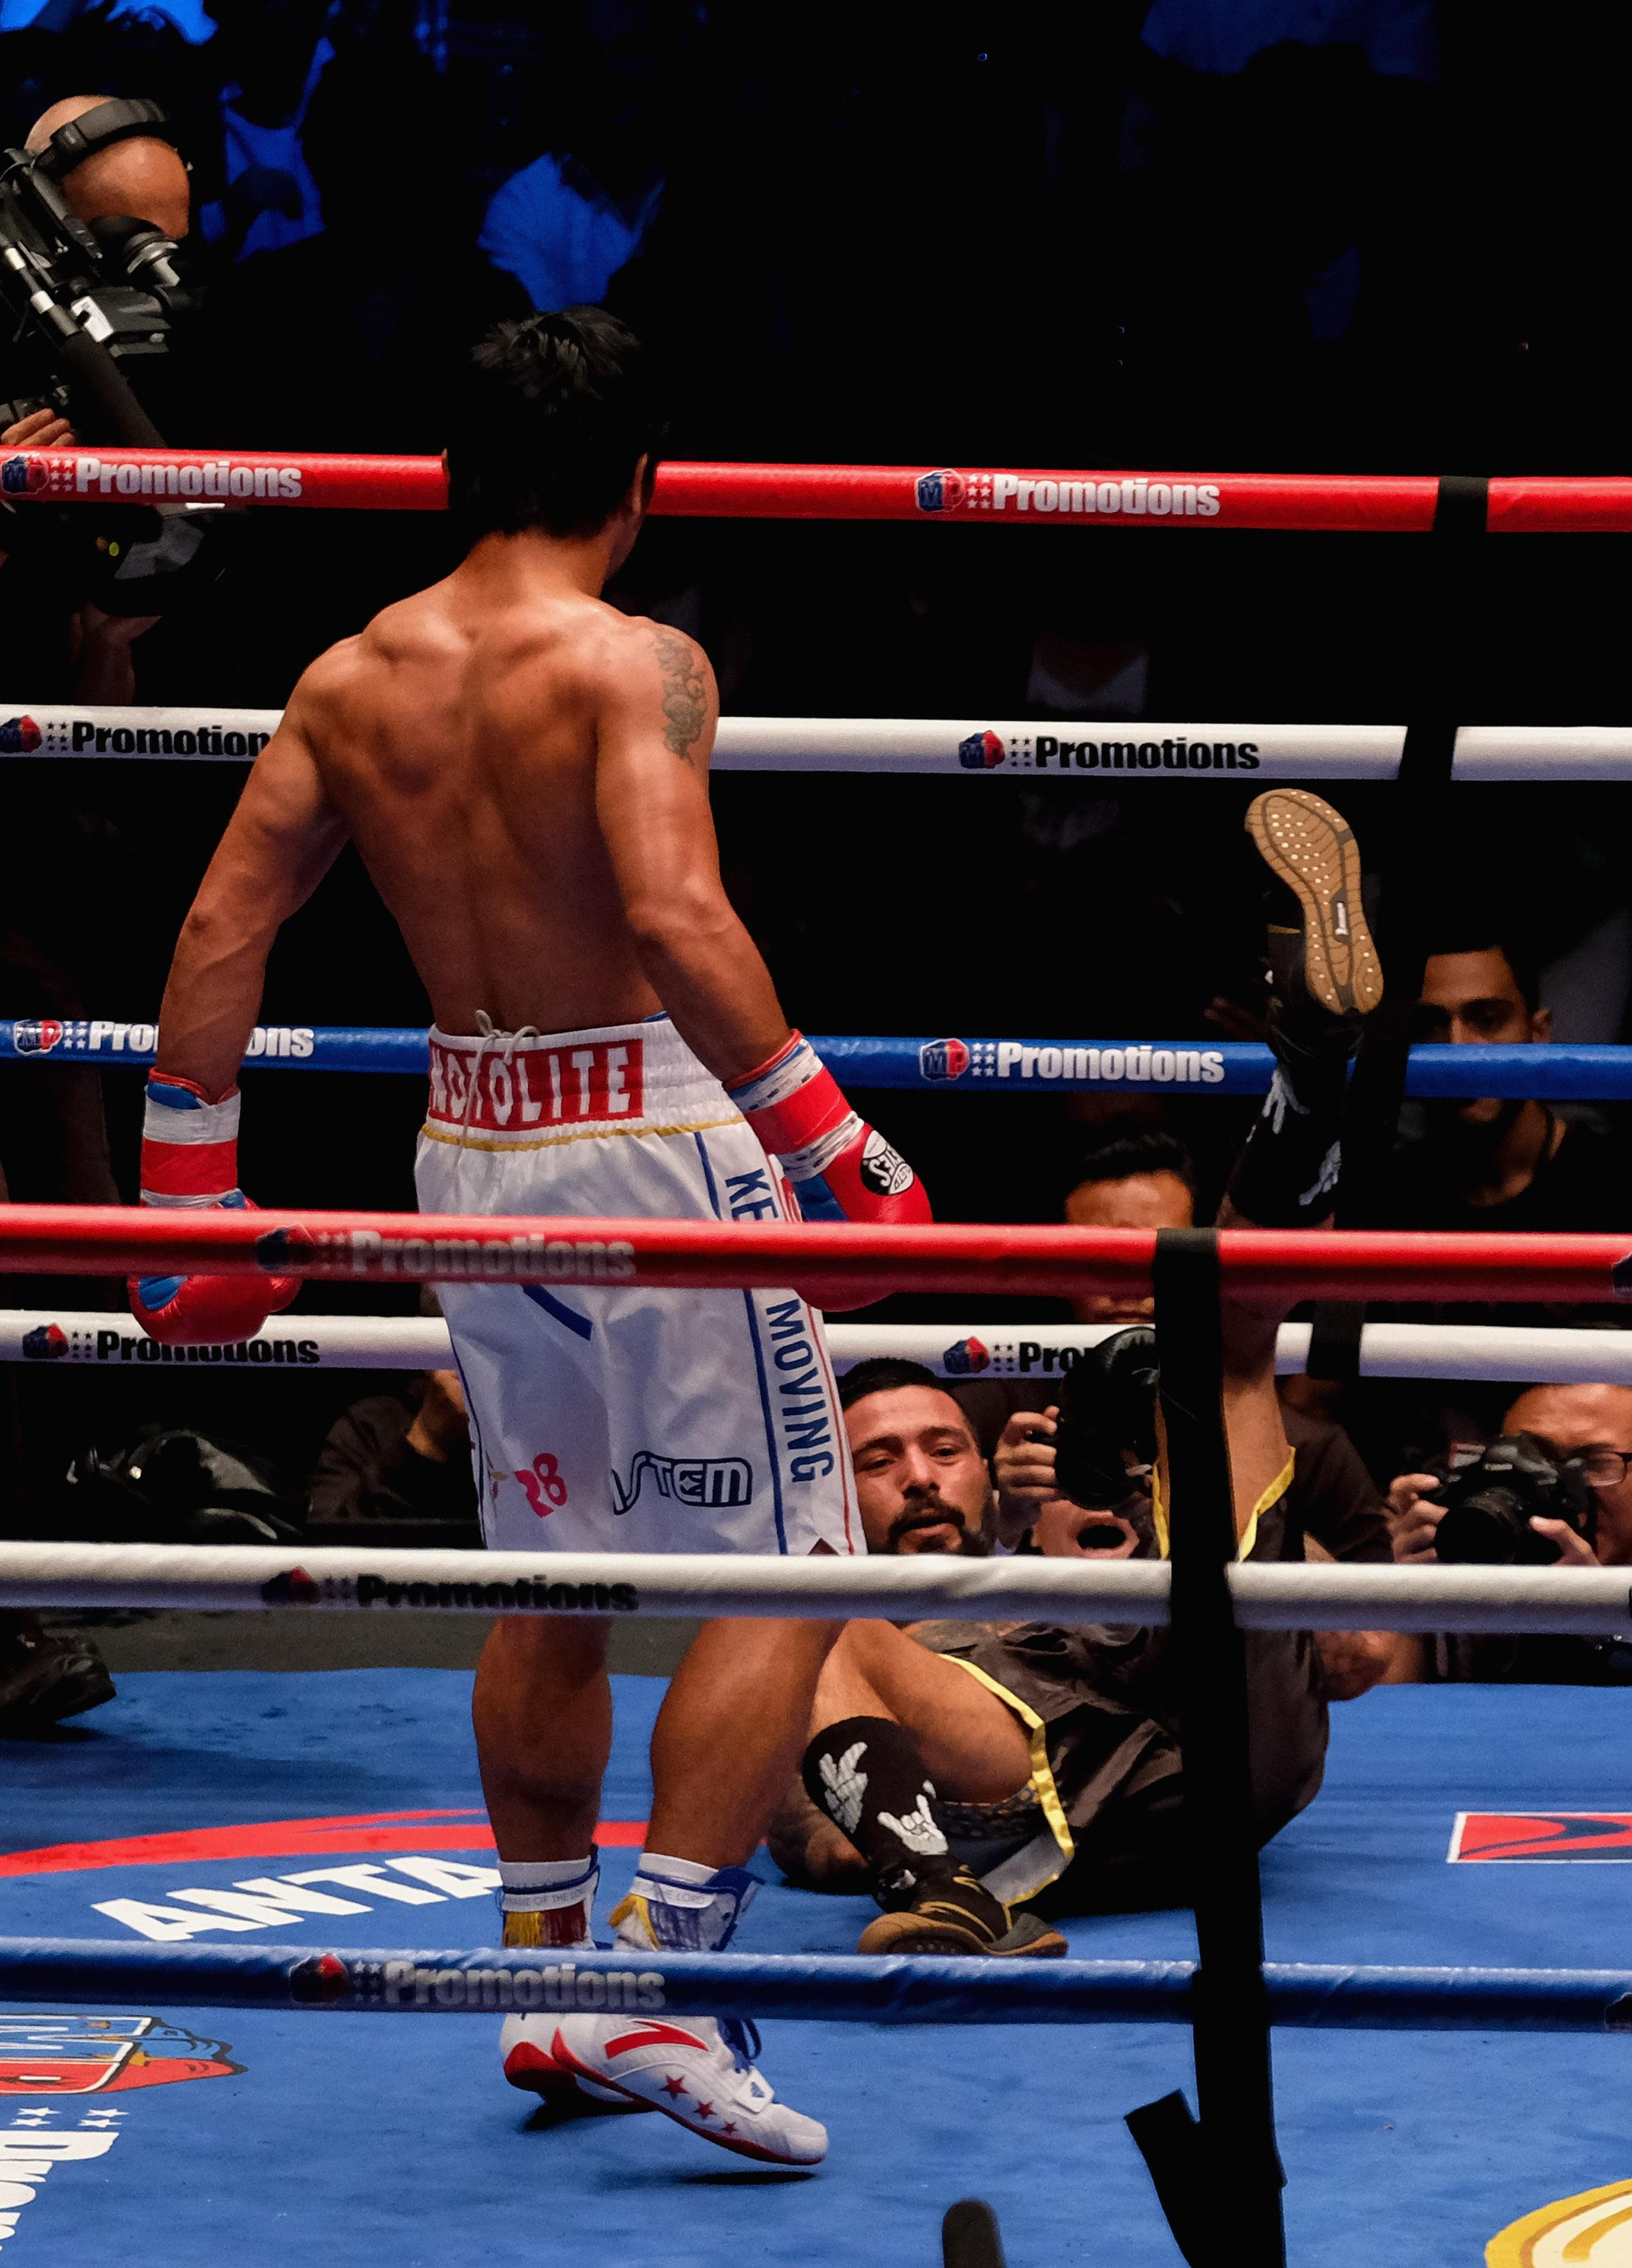 Argentine Matthysse was floored three times by the ruthless Pacquiao